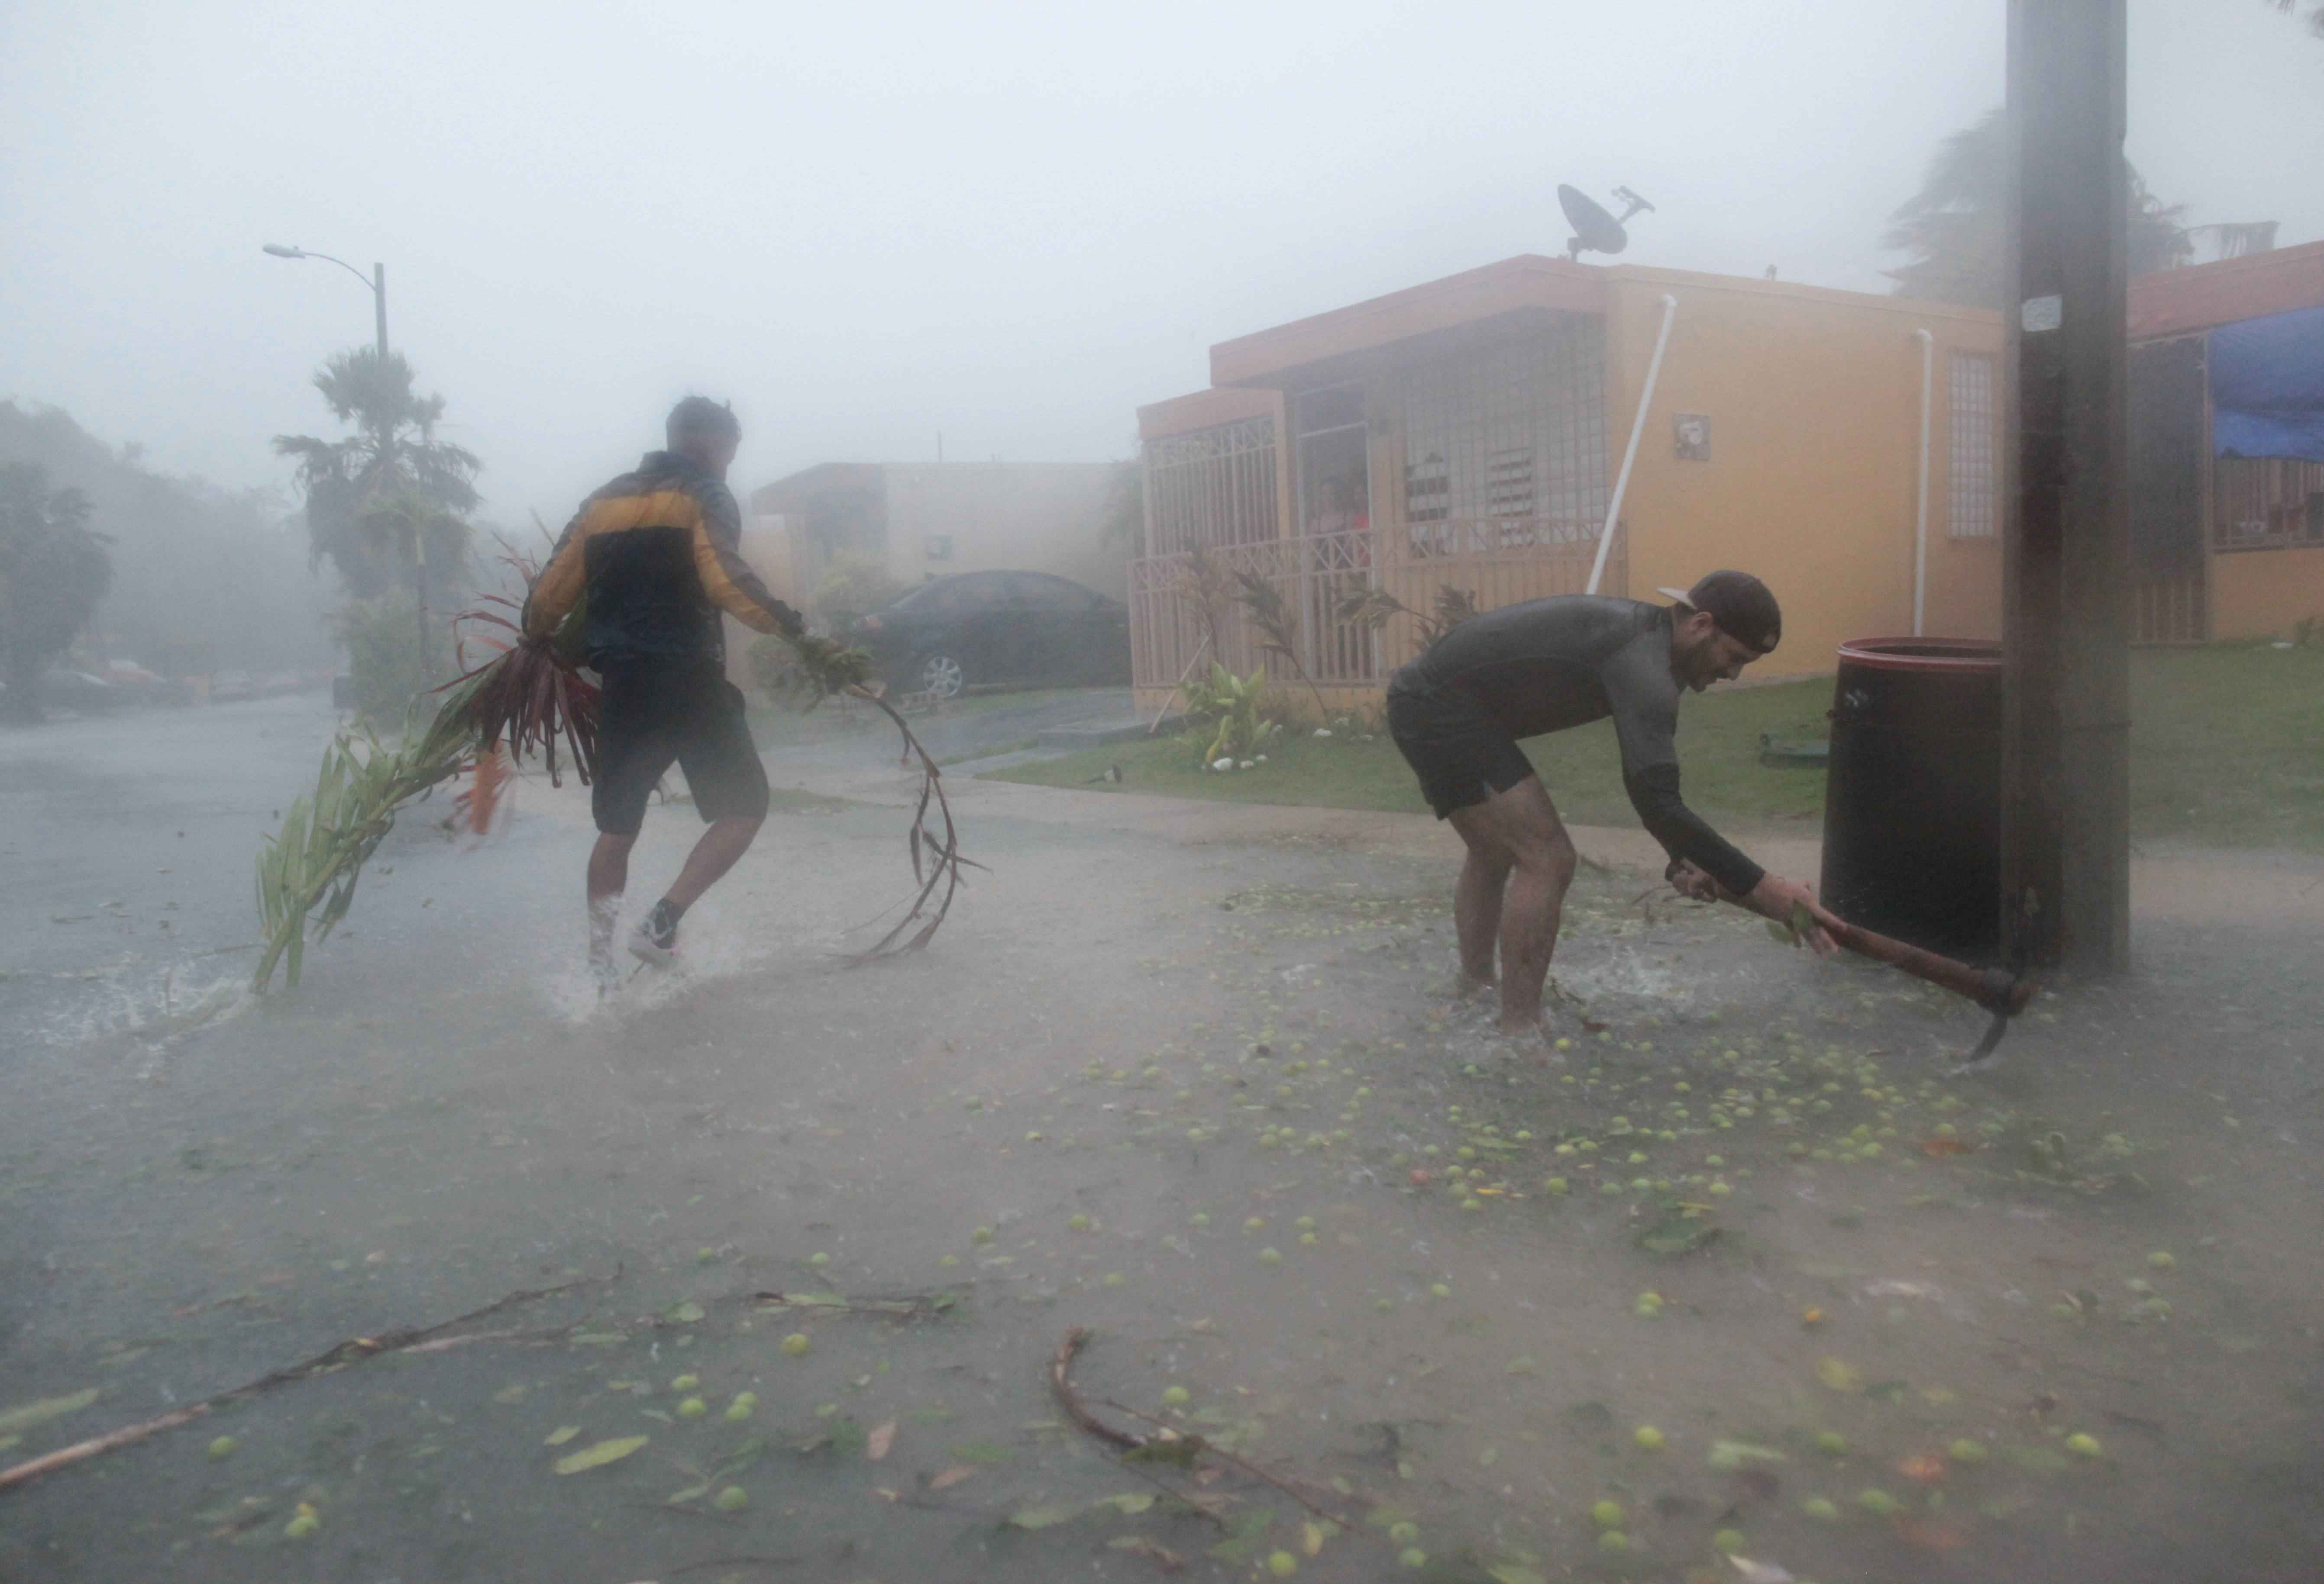 People pick up debris as Hurricane Irma howled past Puerto Rico after thrashing several smaller Caribbean islands, in Fajardo, Puerto Rico on September 6, 2017.